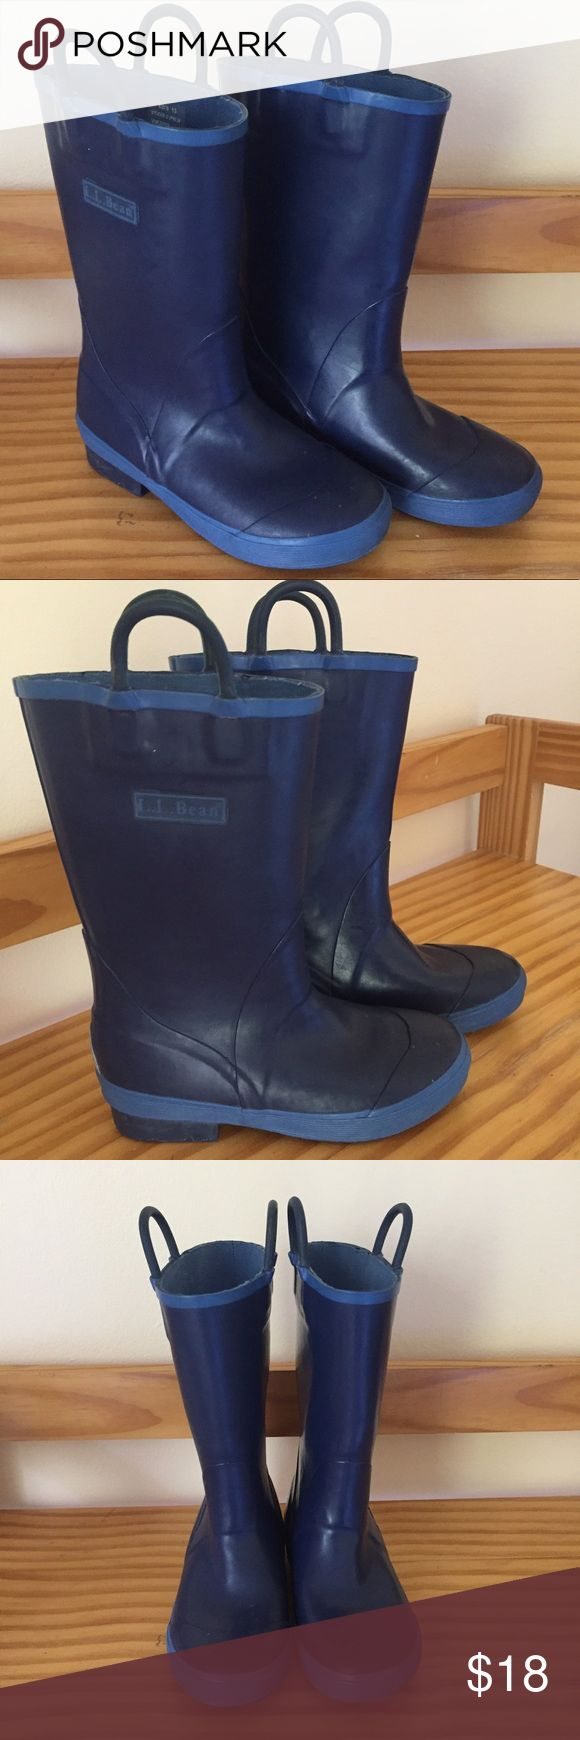 LL Bean puddle jumper rubber rain boots ☔️ 🌈 Take that, puddles! Prepare your child for a rainy day with these L.L. Bean Puddle Stomper Rain Boots. Dark blue with lighter blue trim. Pre-owned, but still have a lot of use left in them. Size 13. Measurements available upon request. L.L. Bean Shoes Rain & Snow Boots